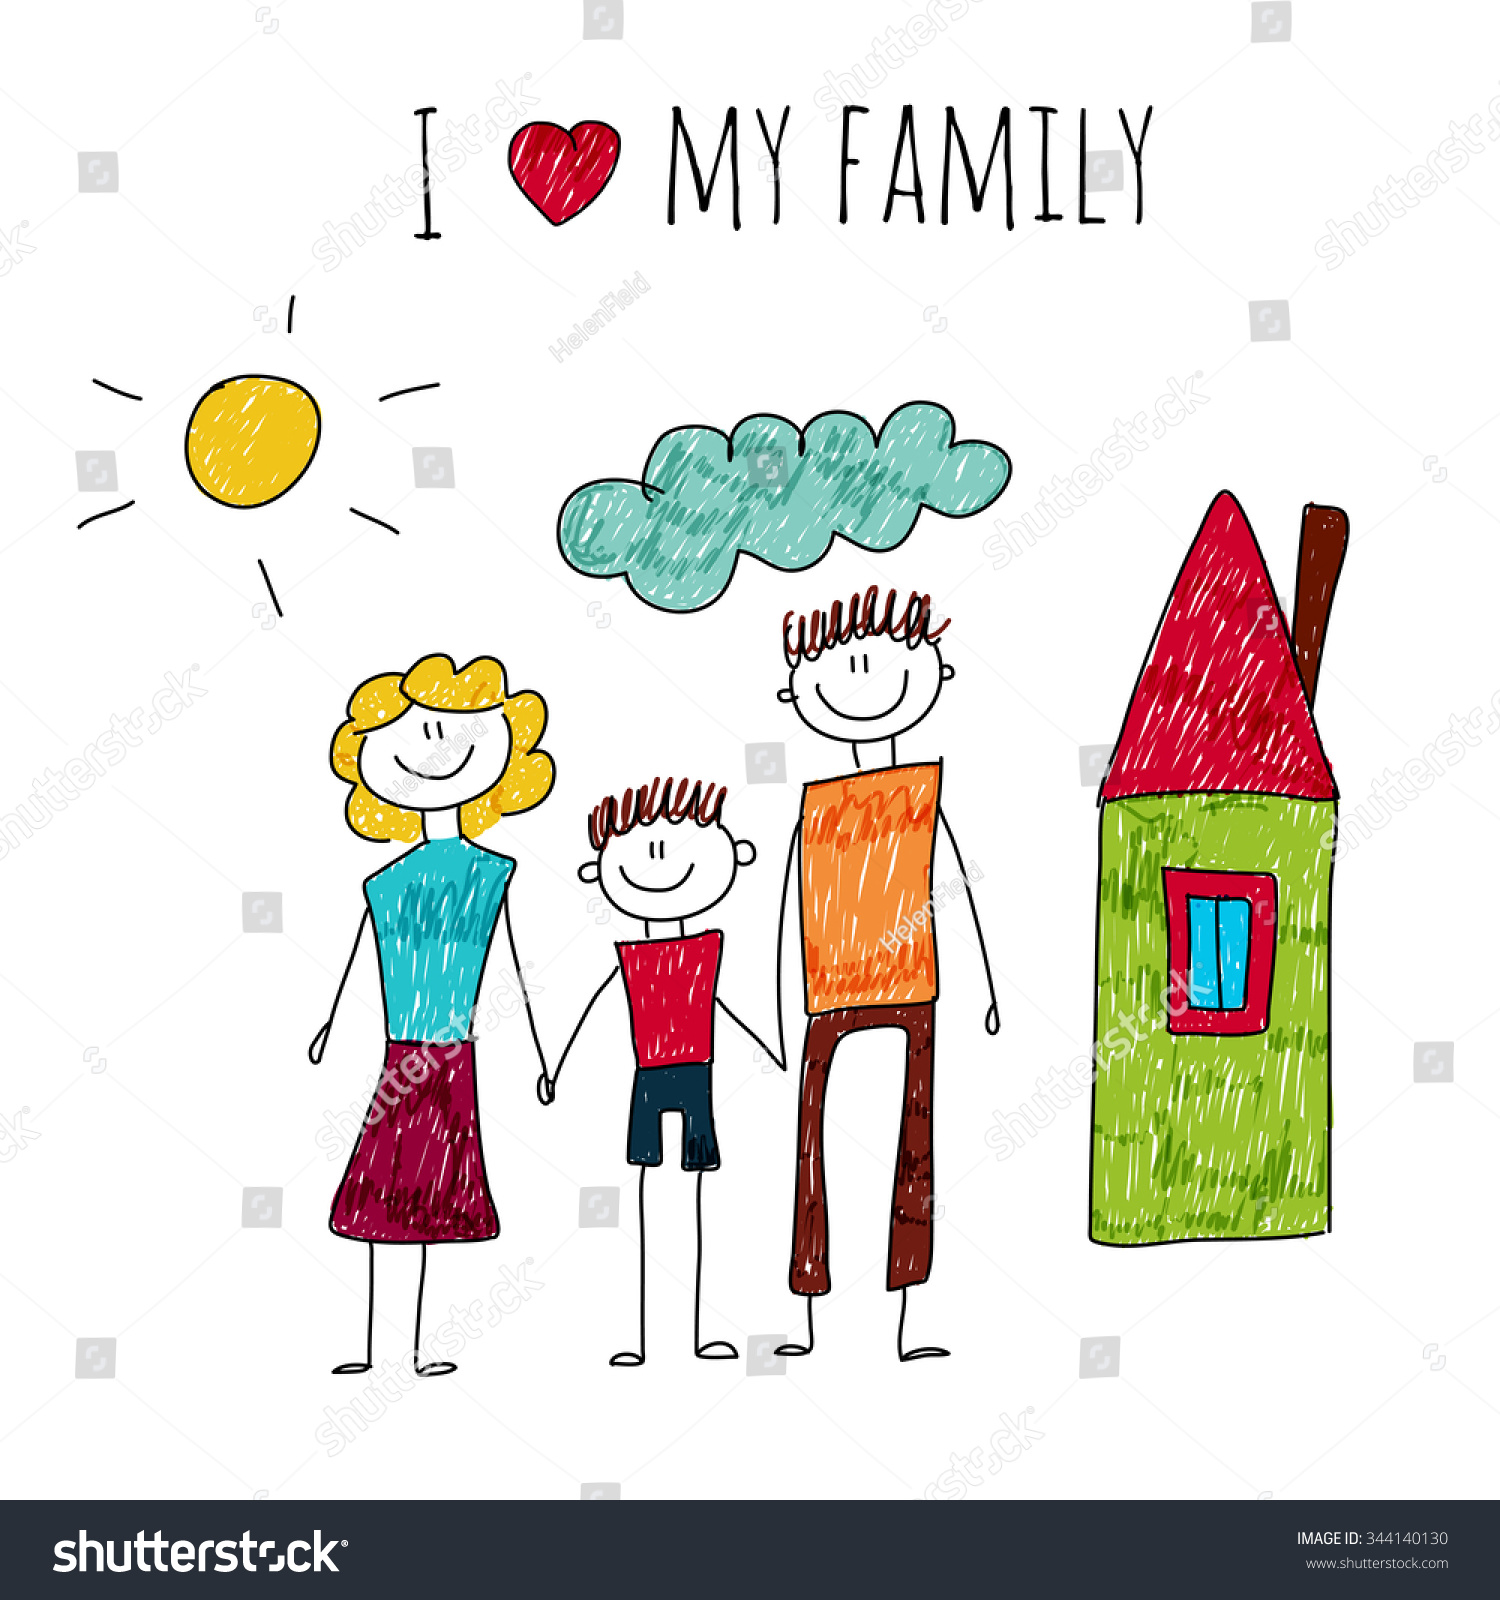 about me and my family essays Family is where love begins and never ends having someone to love is familyhaving somewhere to go is home and having both is a blessing my family unlike others is small we enjoy spending time with each other and making memories we will cherish forever.